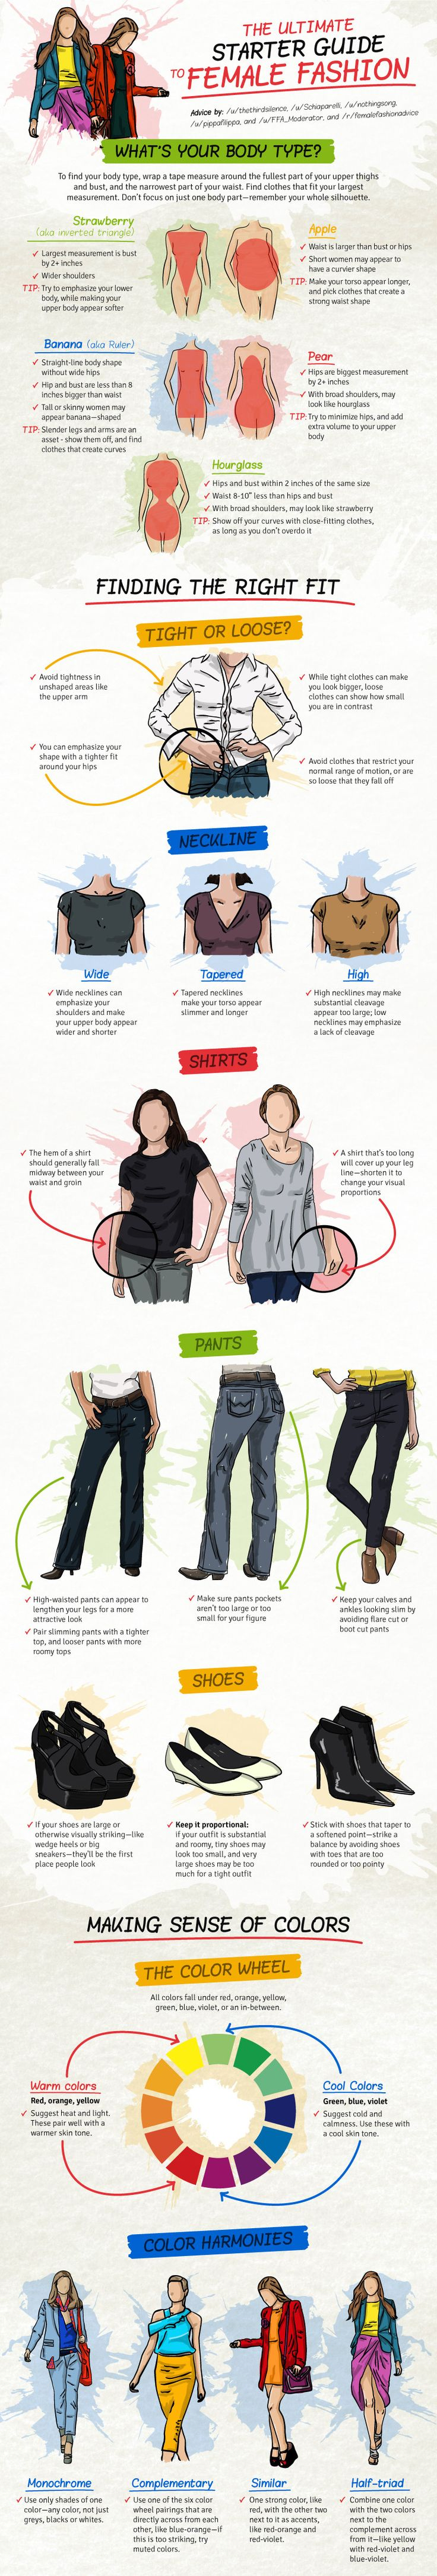 Everything You Need To Know About Women's Fashion In One Infographic